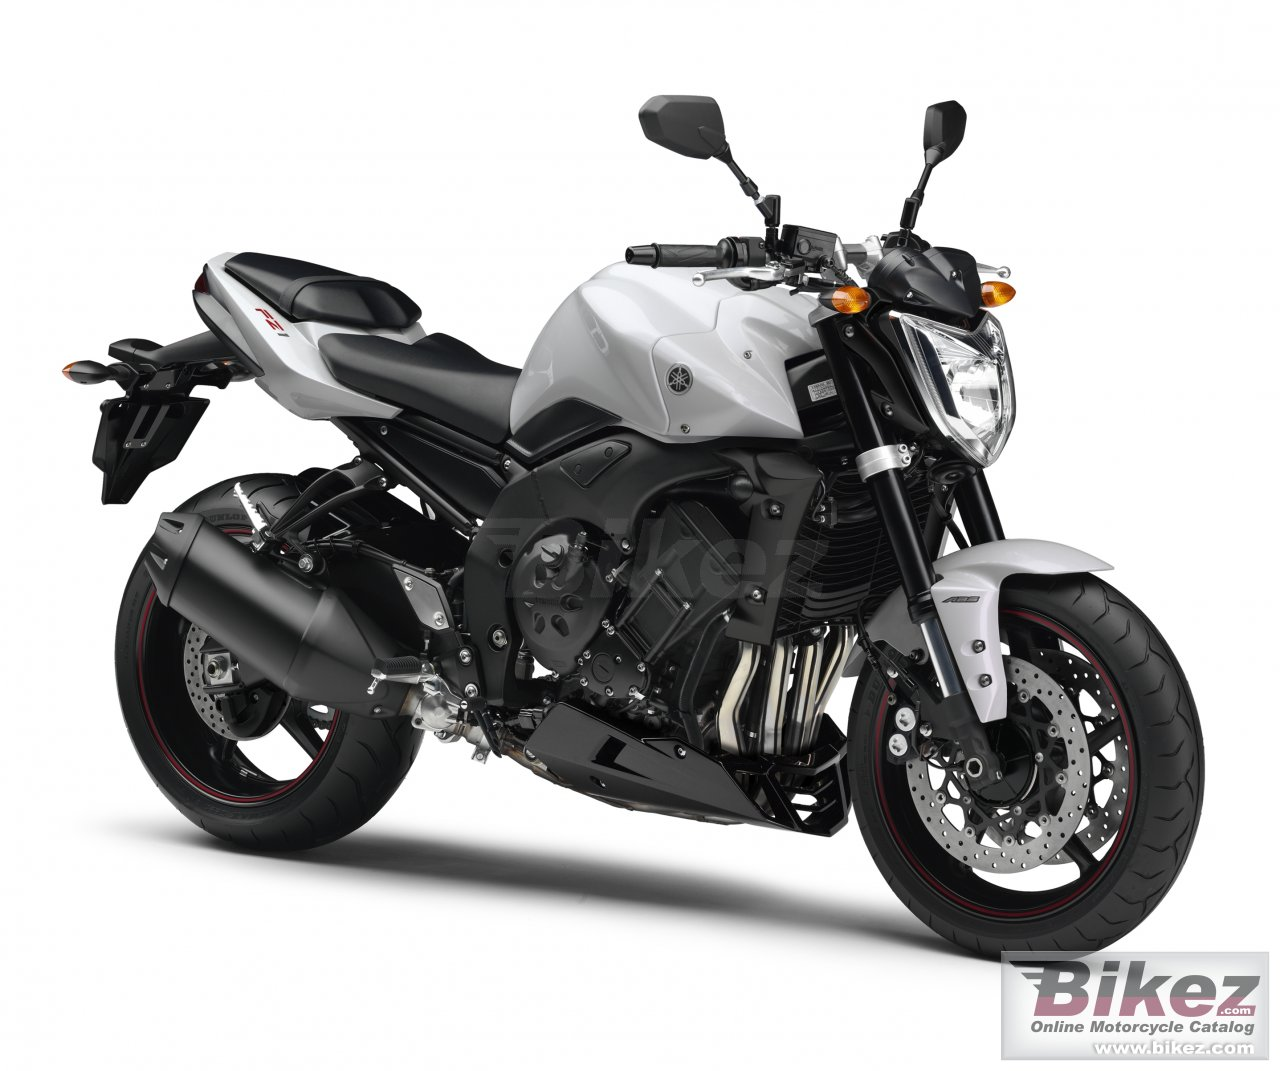 Big Yamaha fz1 abs picture and wallpaper from Bikez.com